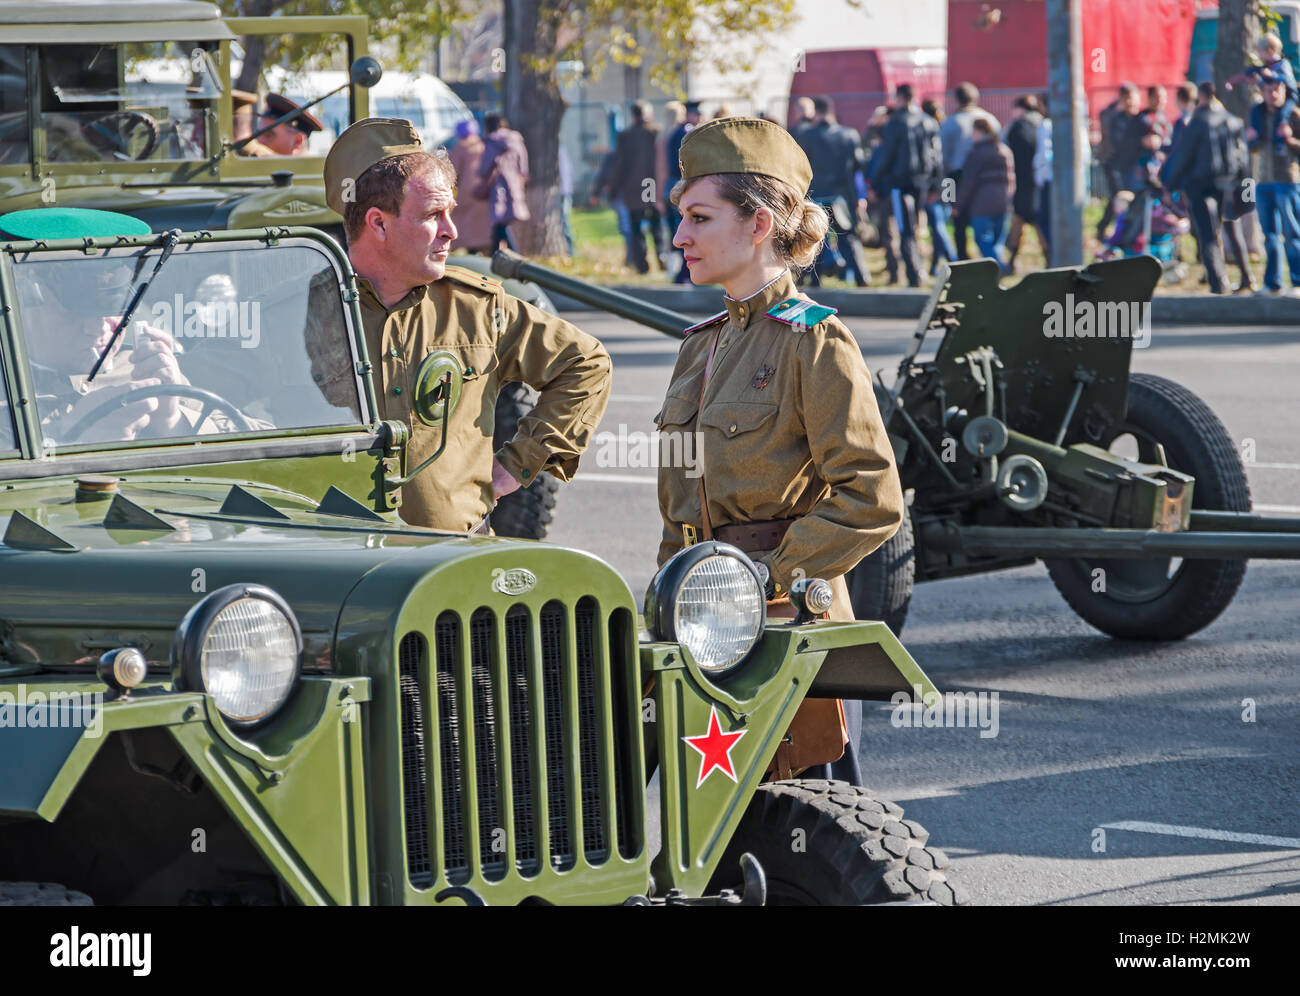 DNEPROPETROVSK, UKRAINE - October 29, 2013: Reconstruction of forcing Dnieper River 152 Guards Division in 1943 Stock Photo